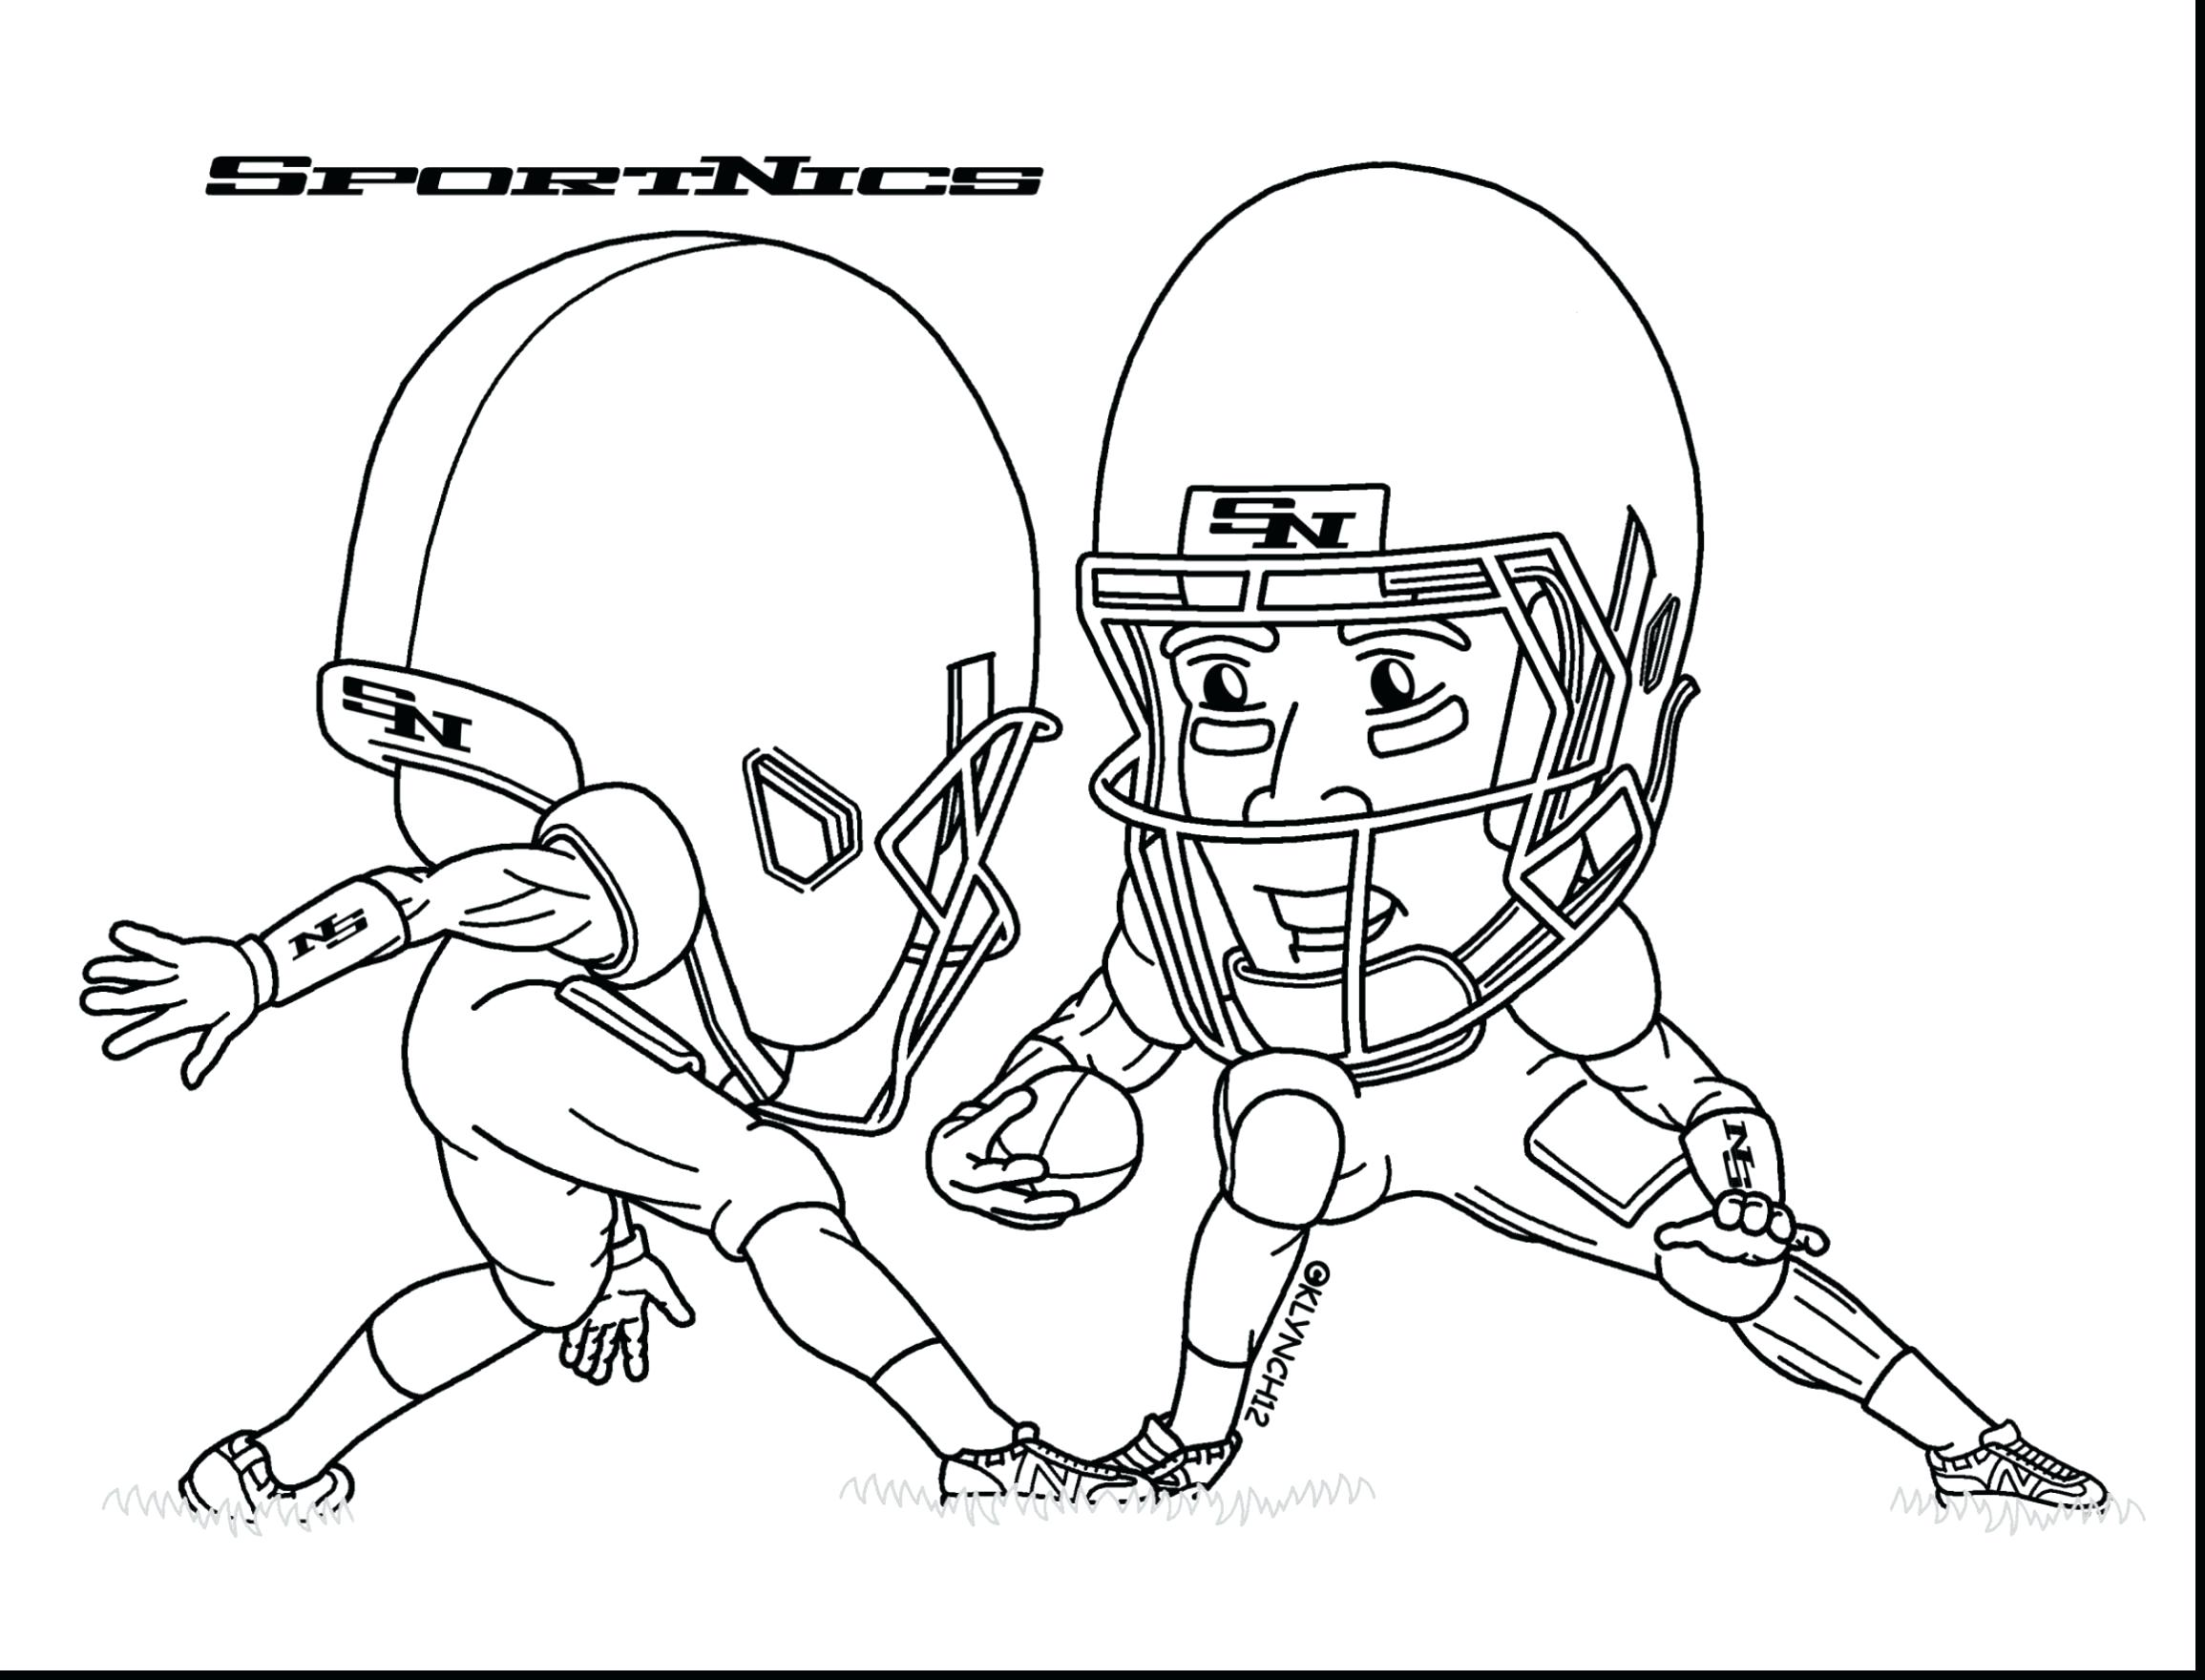 Football Player Line Drawing at GetDrawings.com | Free for personal ...